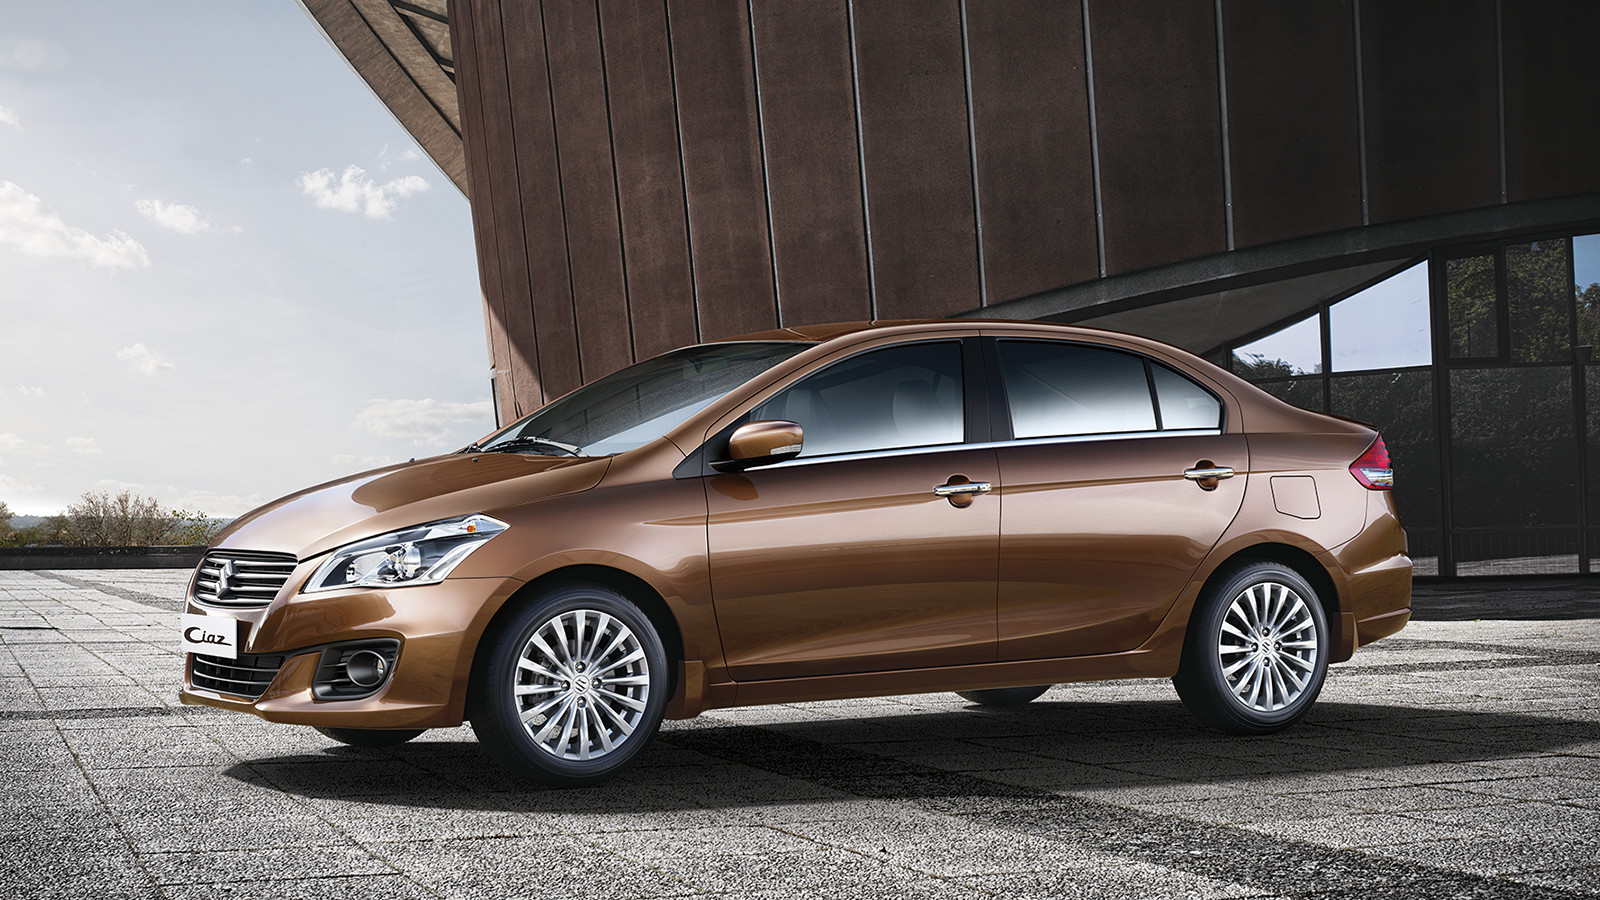 new maruti suzuki ciaz 2018 facelift hd wallpapers collection ~ all